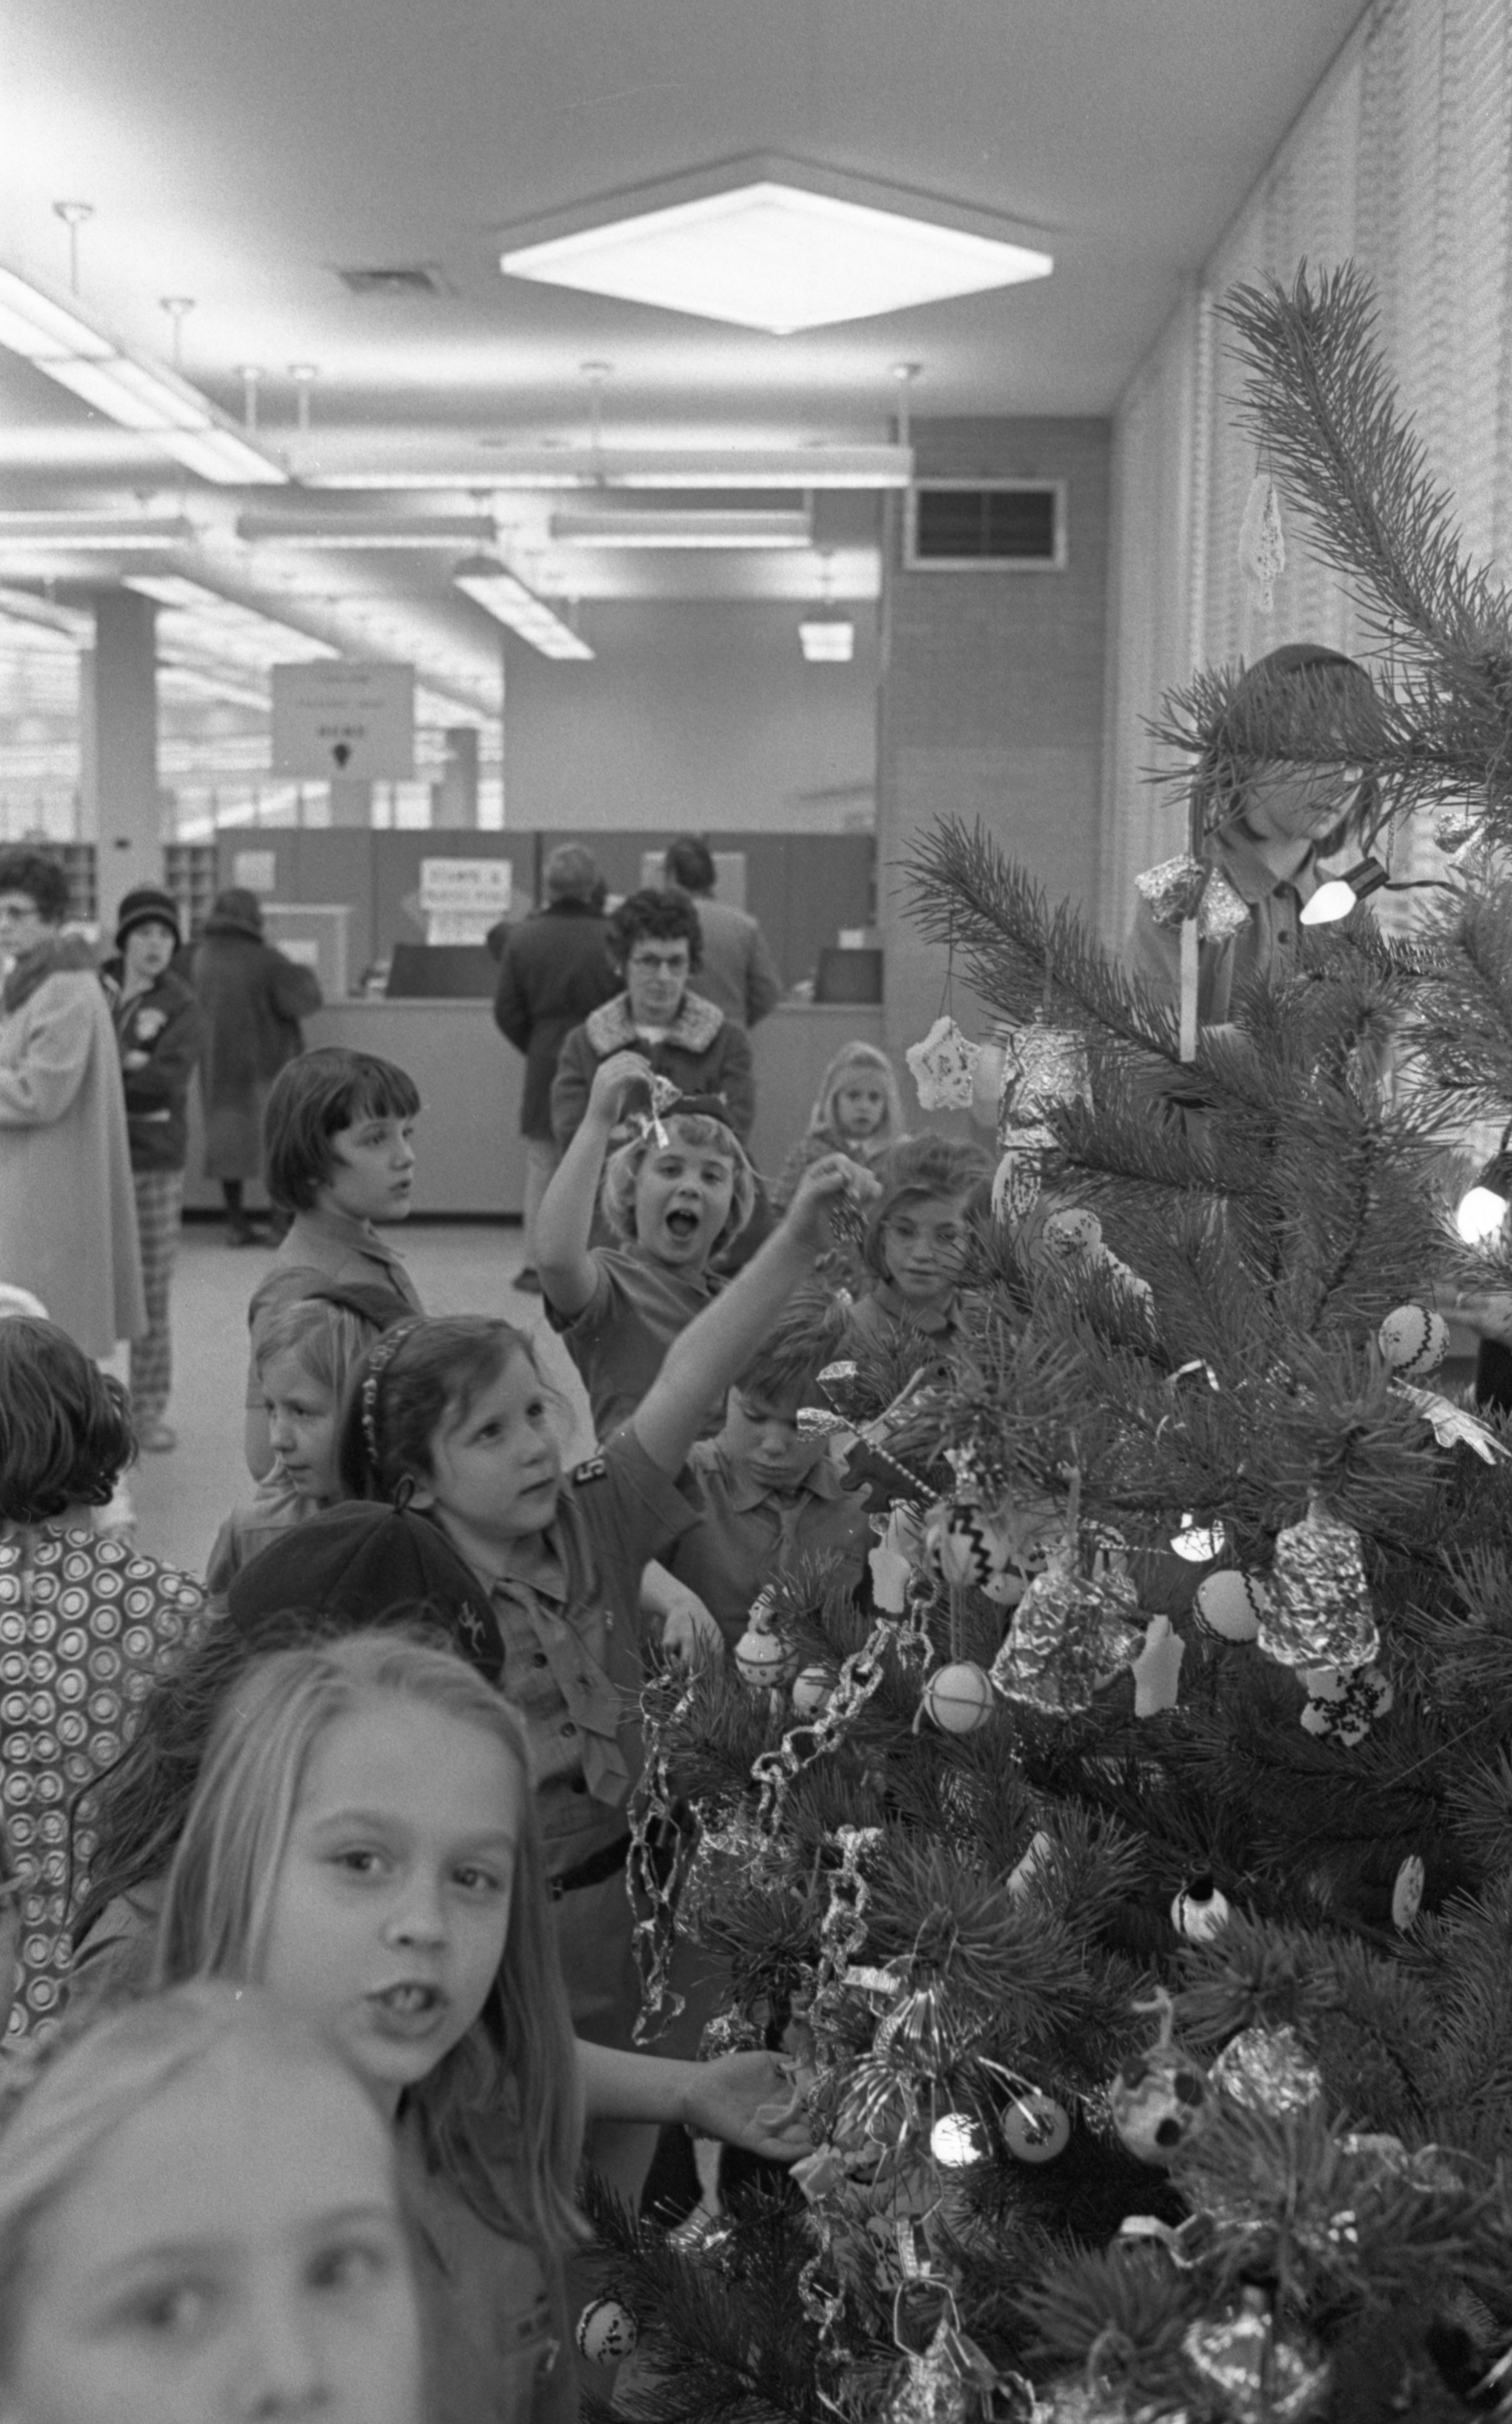 Lawton School Brownie Troops Decorate Christmas Tree At the Stadium Post Office, December 1970 image